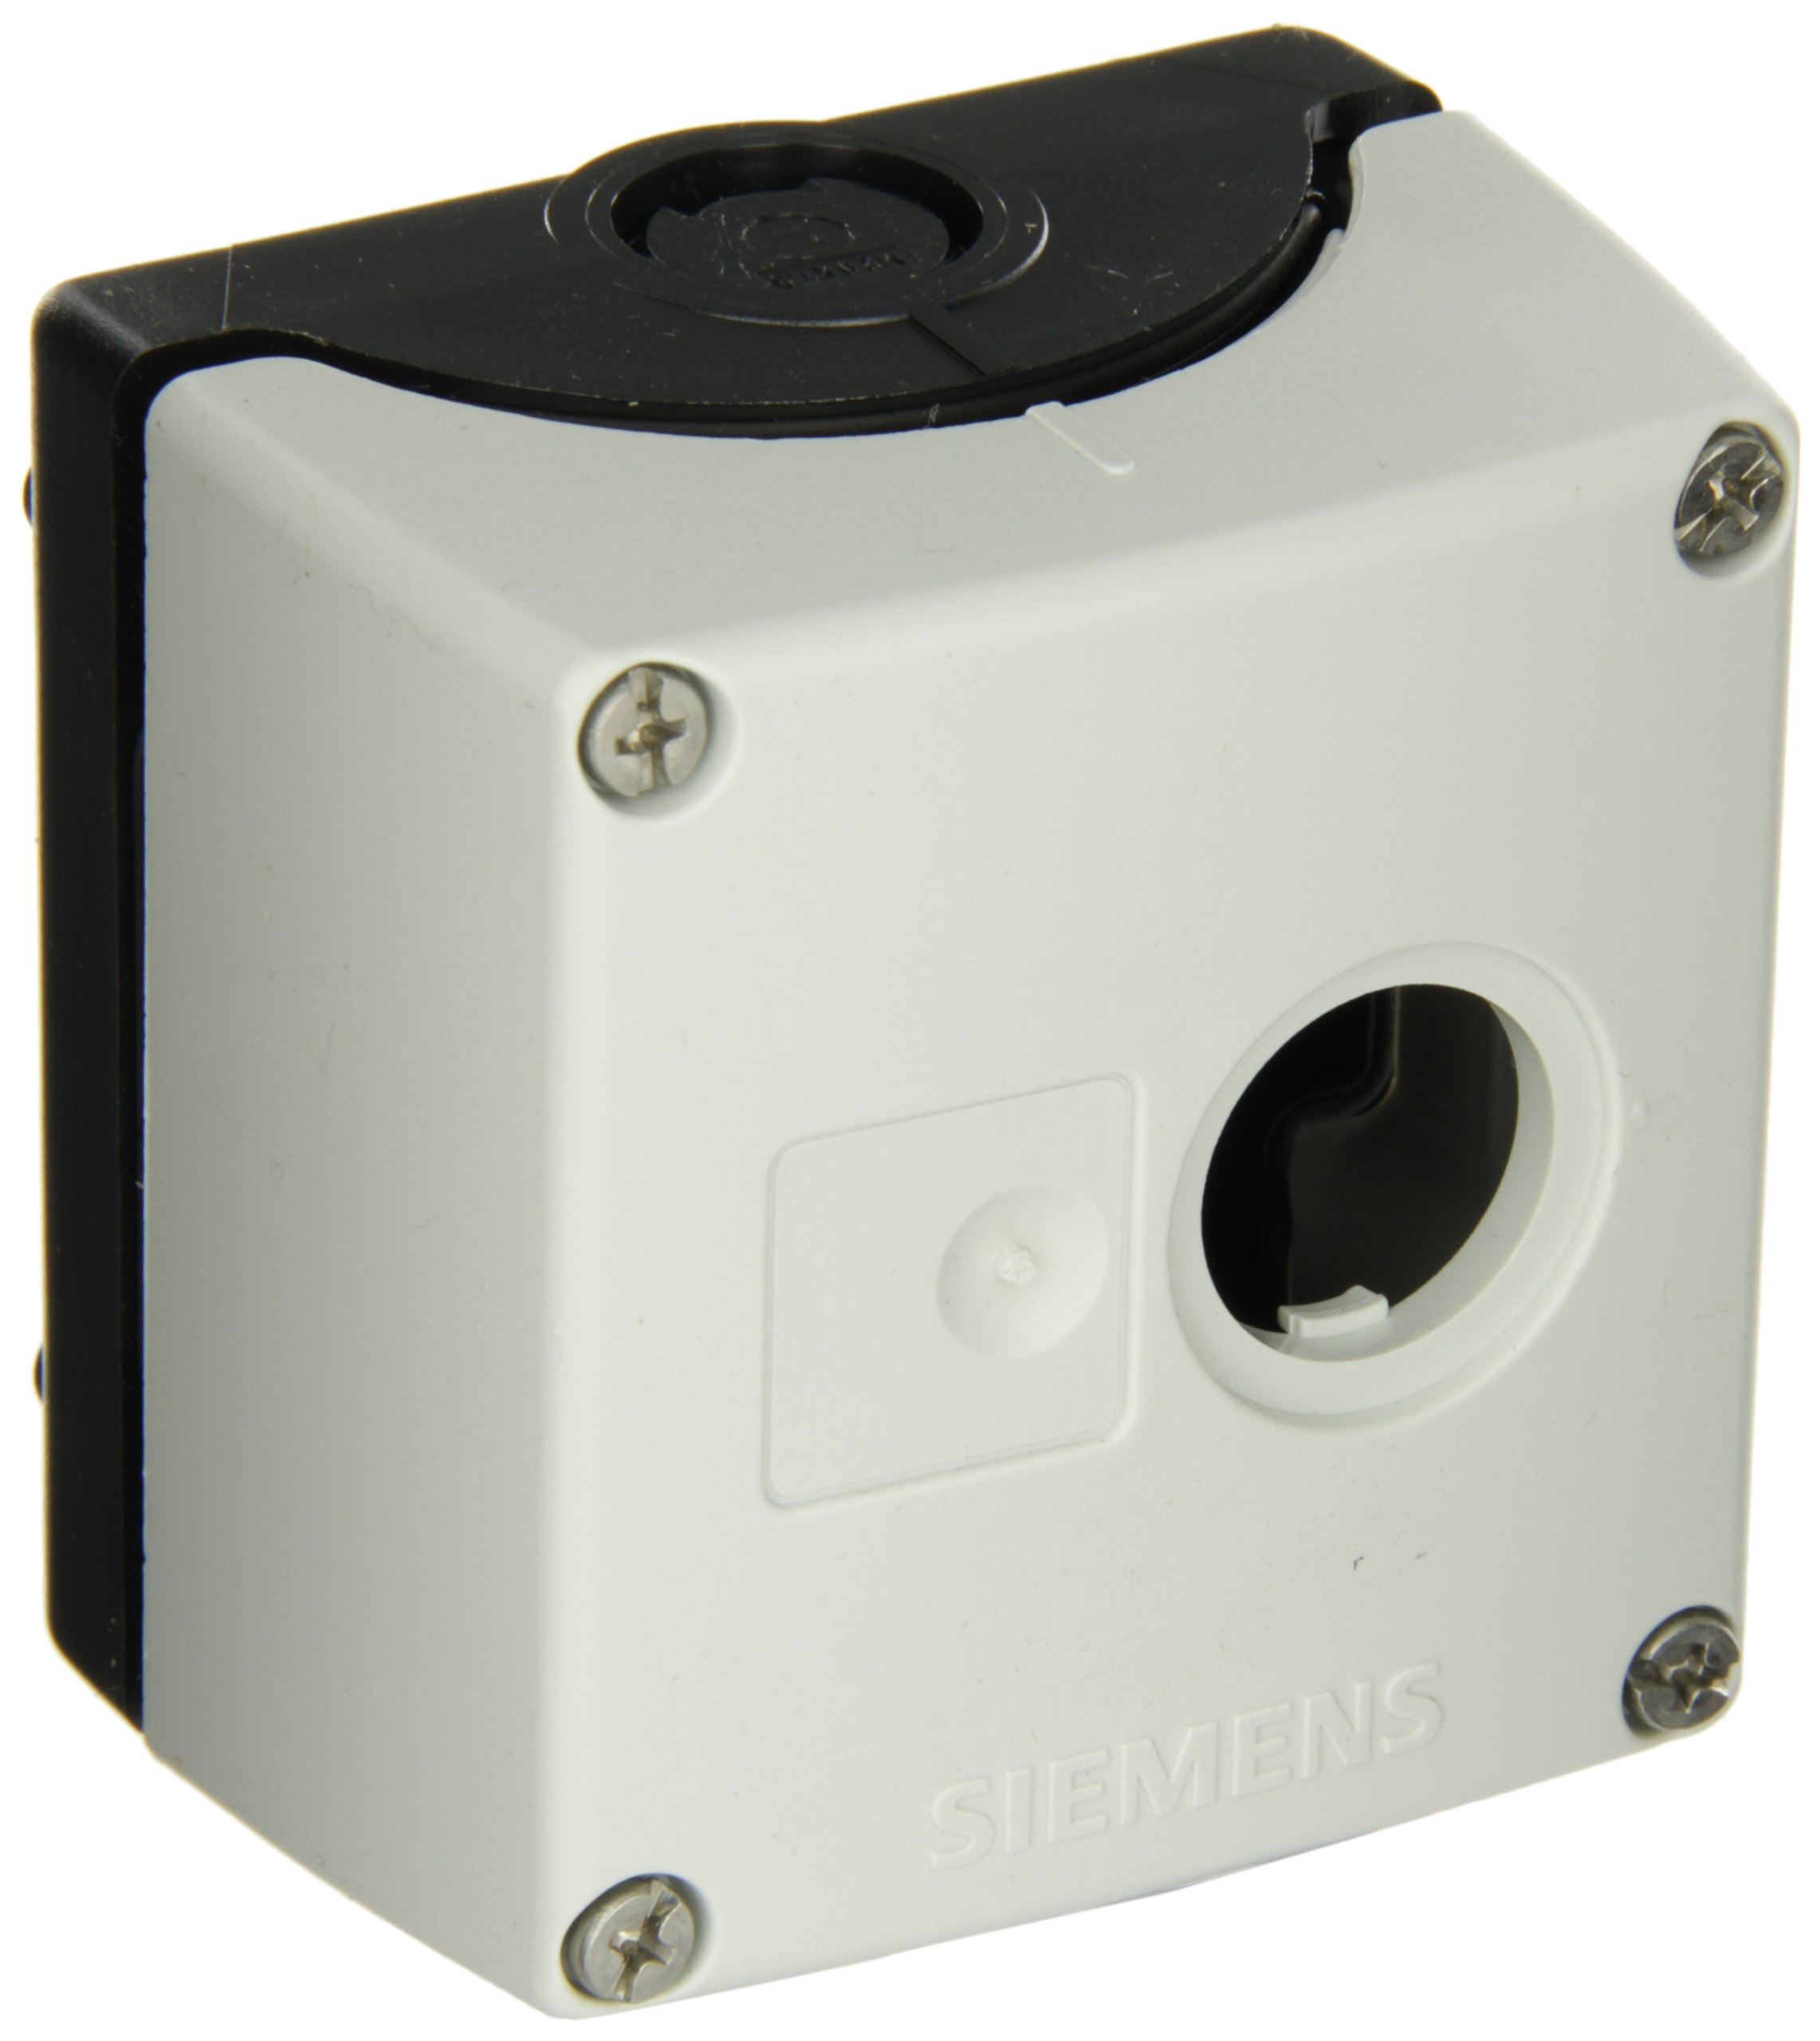 Siemens 3SB38 01-0AA3 Empty Enclosure, Molded Plastic, Used With Contact Blocks, Lampholders, 1 Pole Operator, 1 Hole